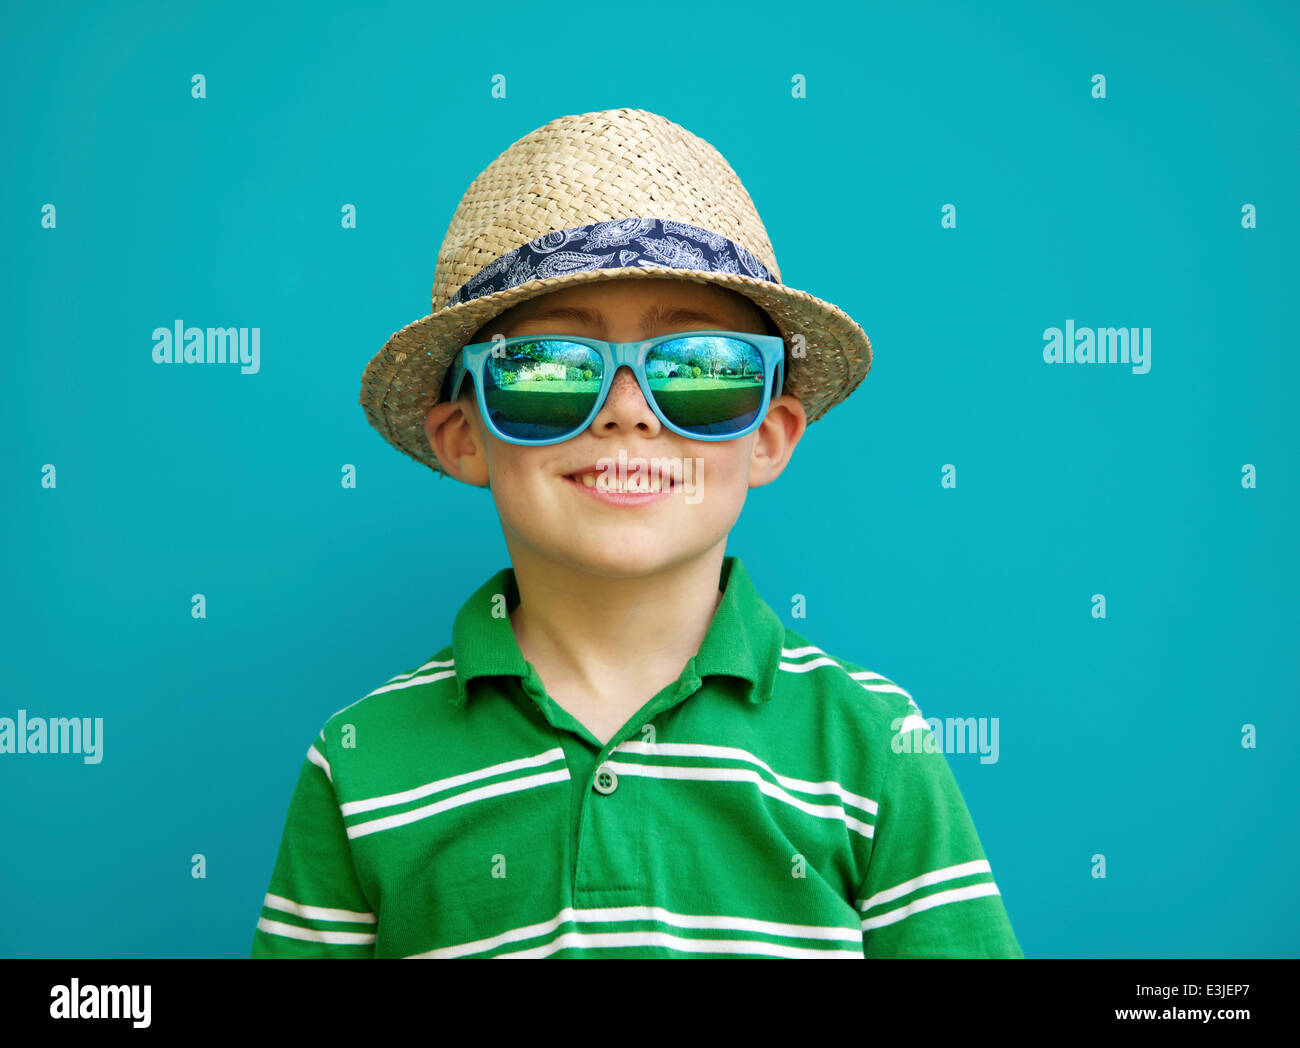 Smiling Boy Wearing Straw Hat and Sunglasses Stock Photo